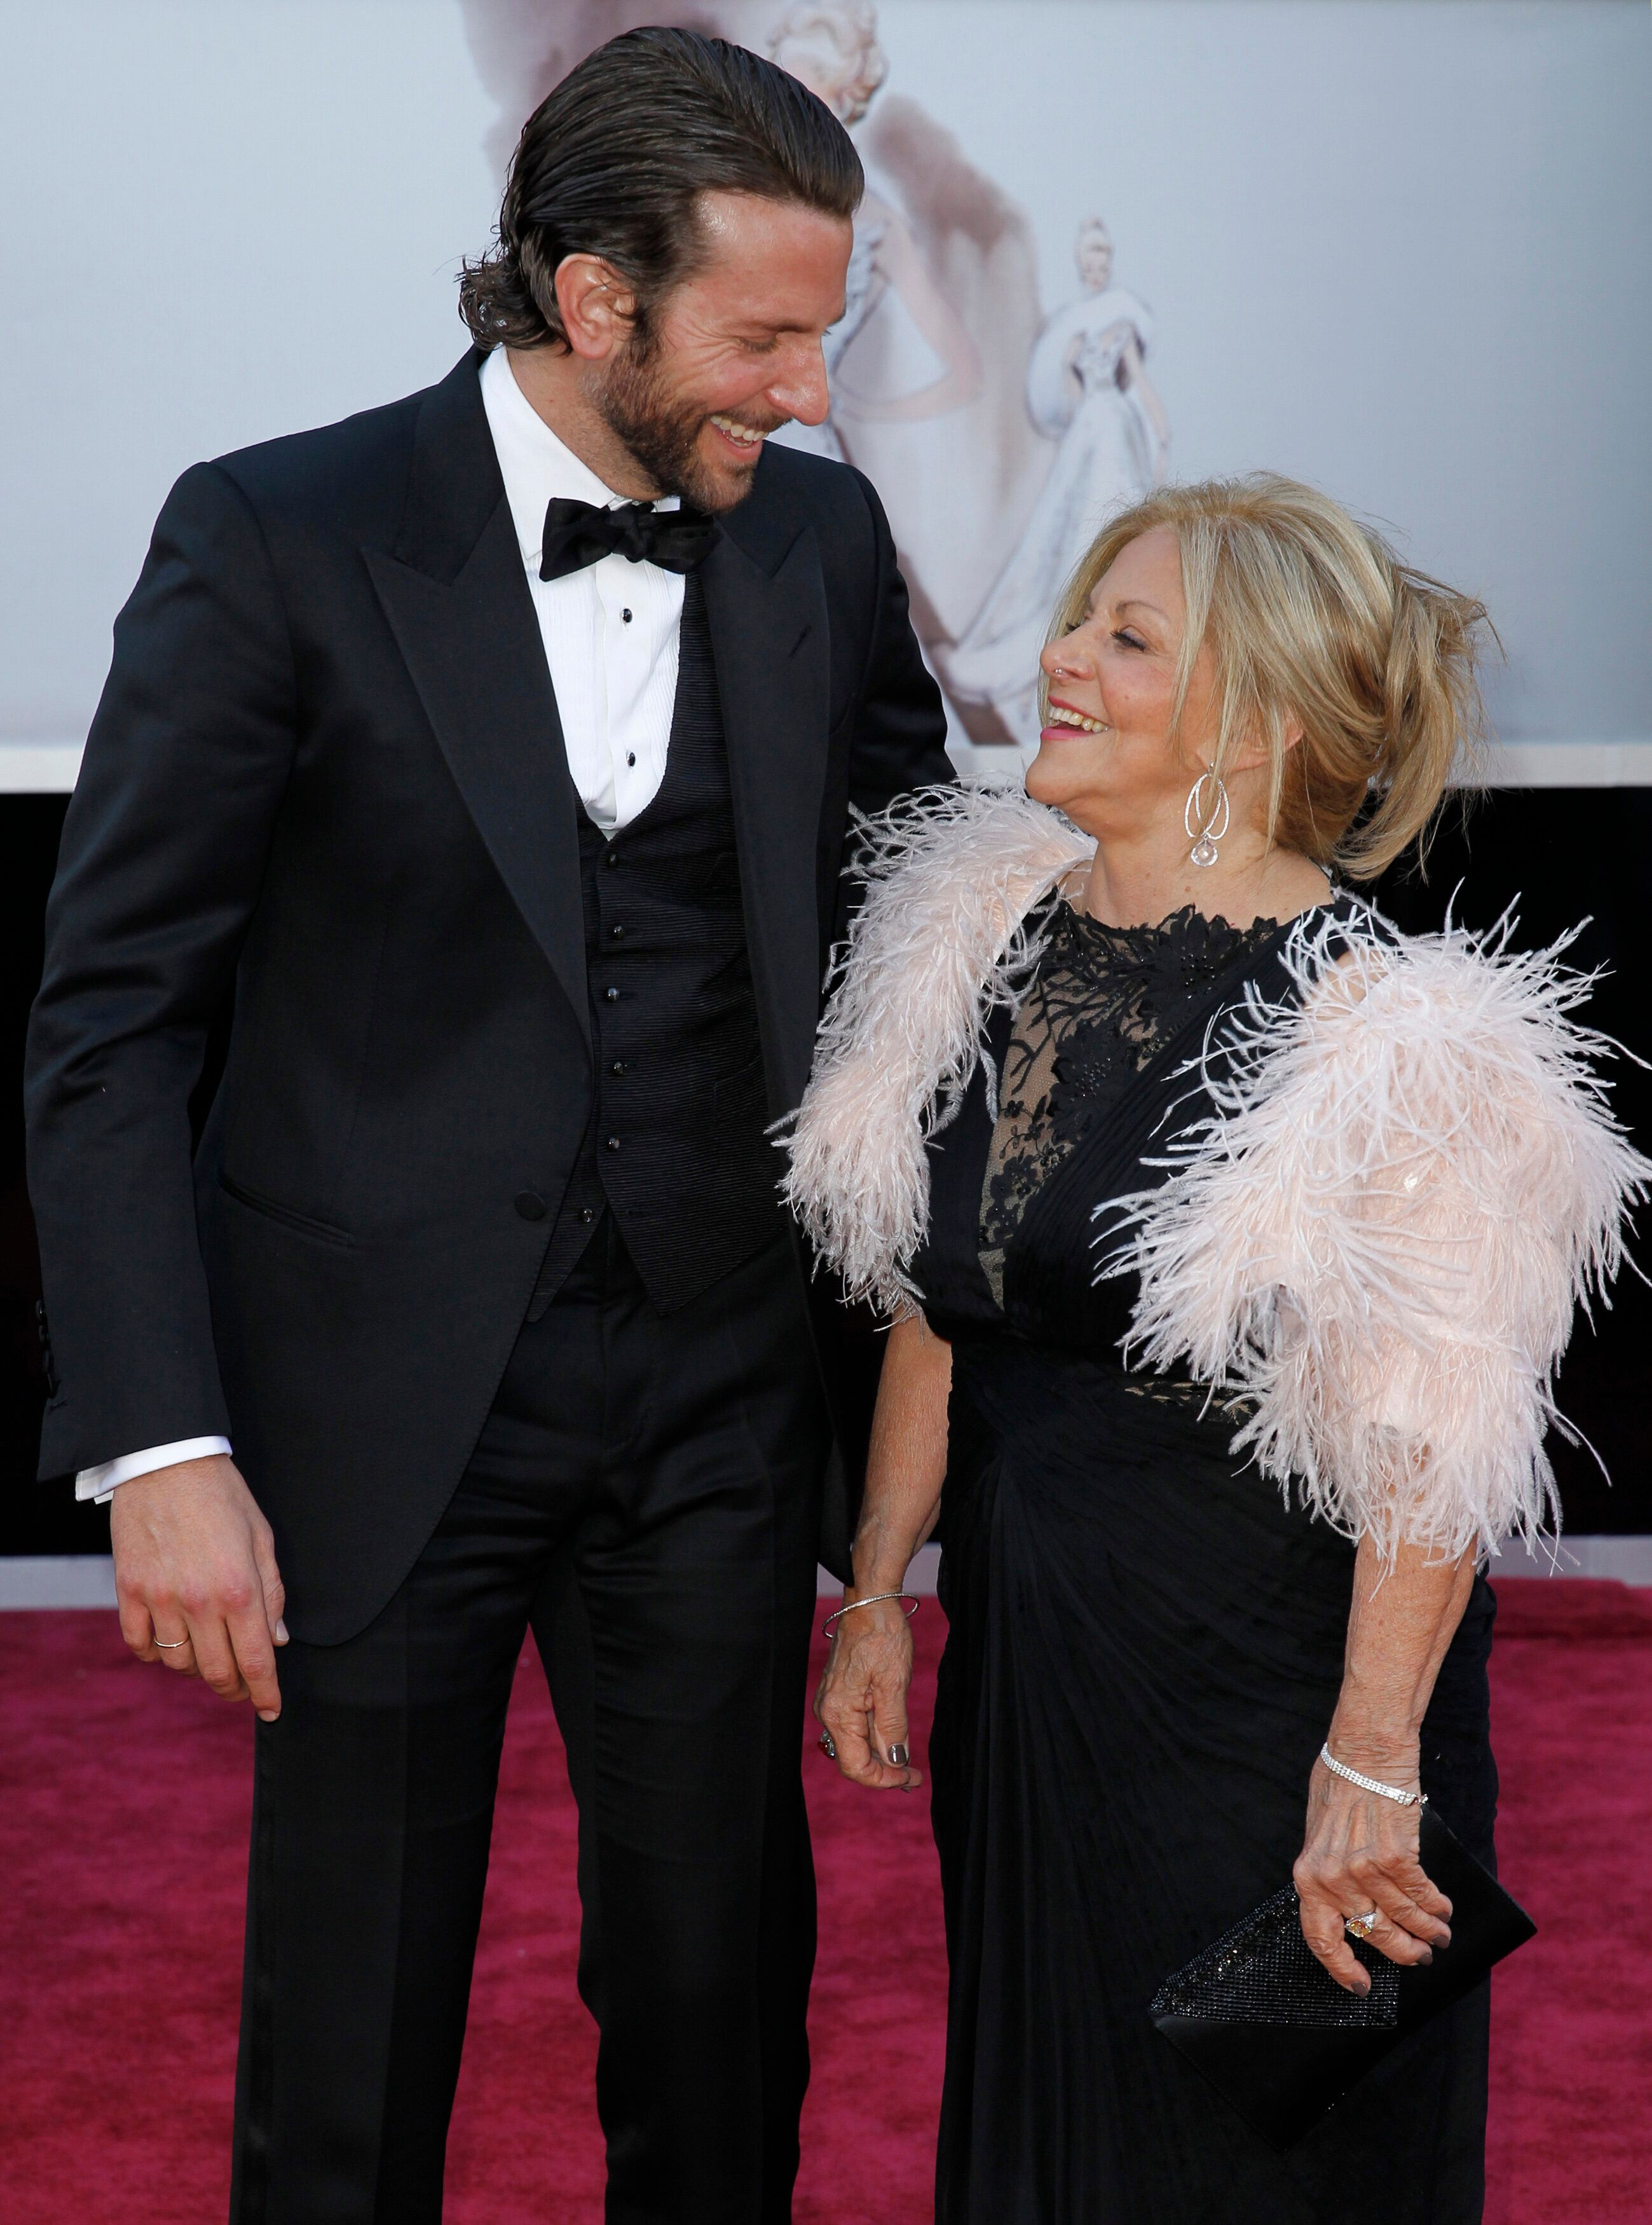 Bradley Cooper and his mother Gloria also made the scene at the 2013 Oscars.